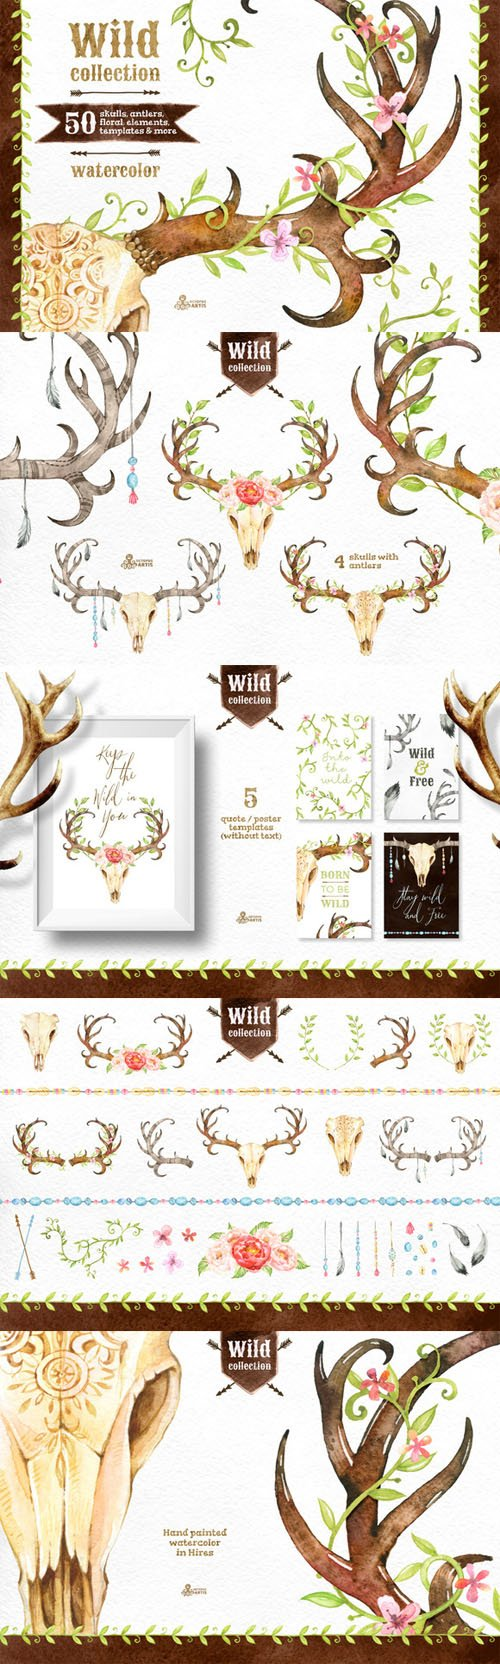 Wild Collection - CM 293347